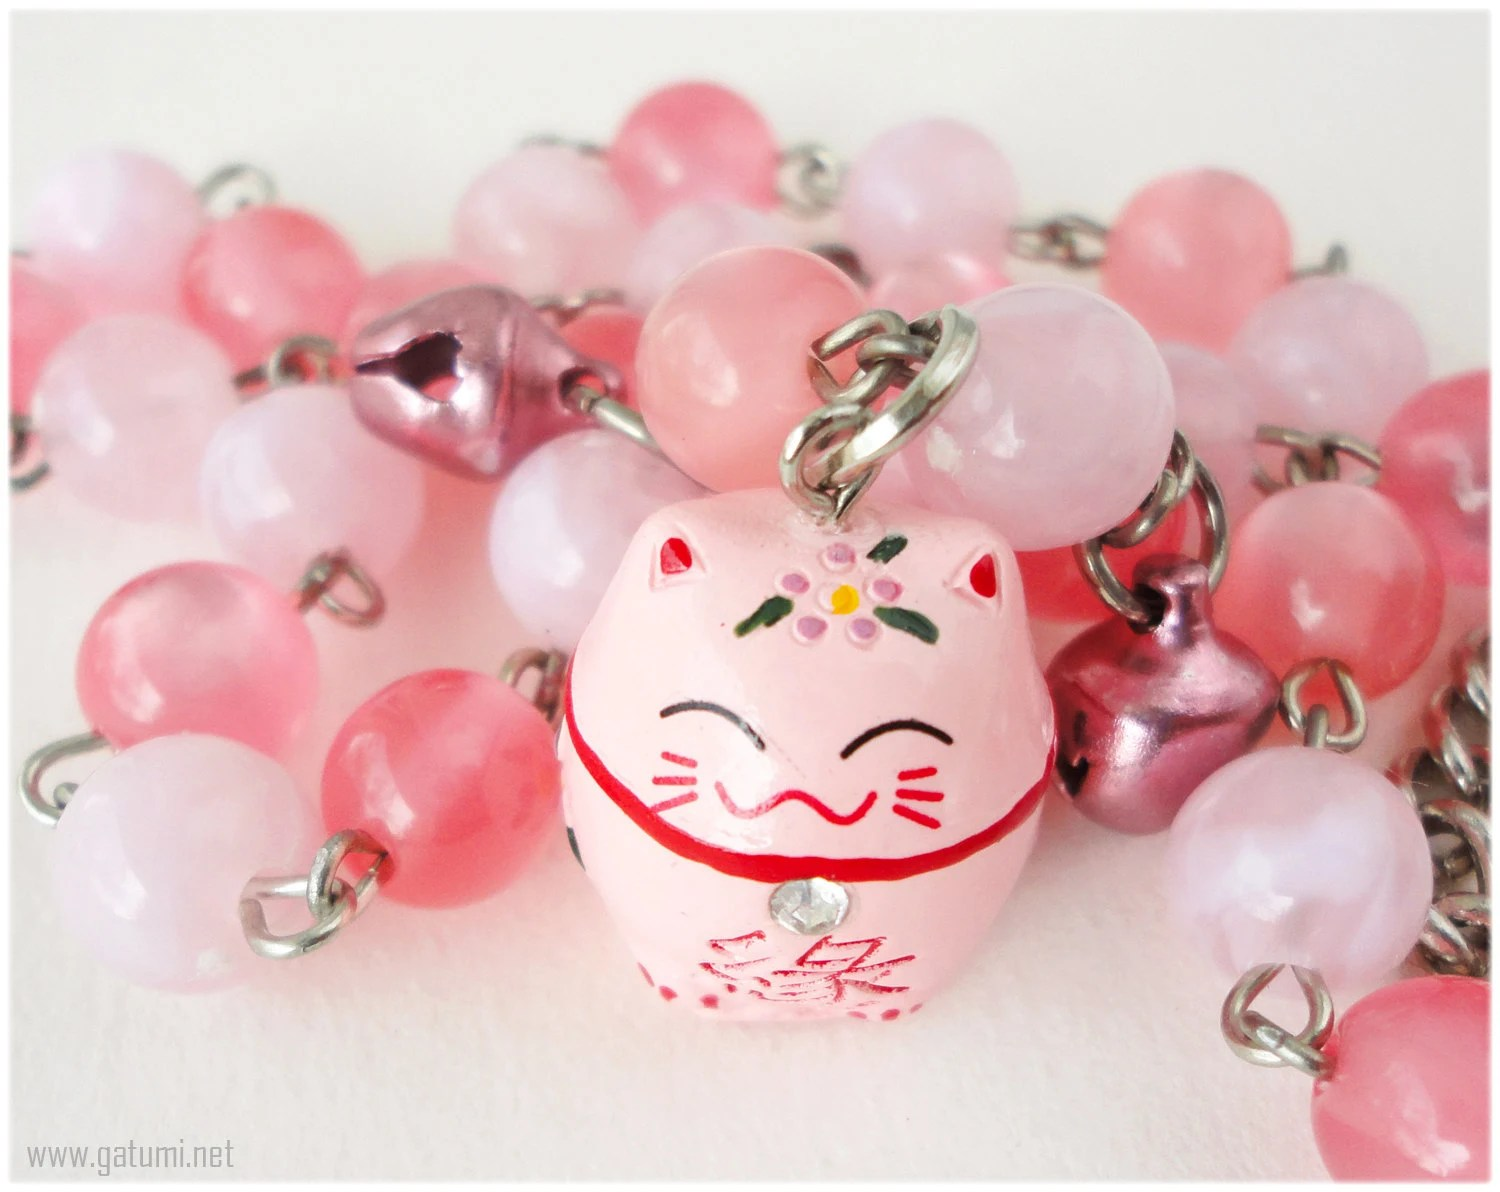 Pink Maneki Neko Necklace with Bell Charms Kawaii Jewelry